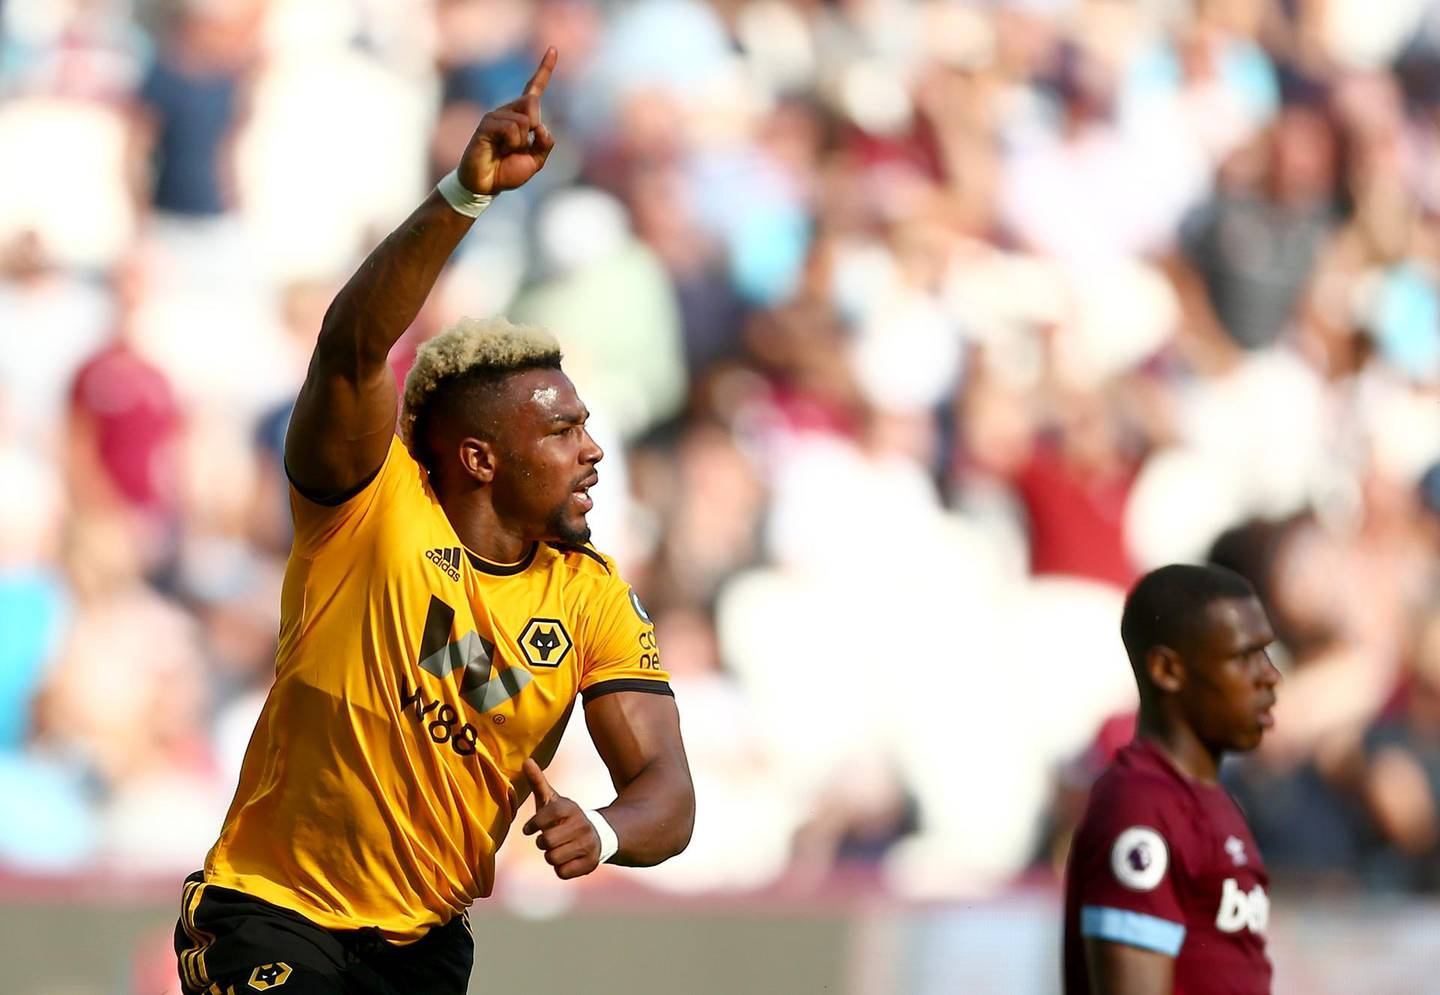 LONDON, ENGLAND - SEPTEMBER 01:  Adama Traore of Wolverhampton Wanderers celebrates after scoring his team's first goal during the Premier League match between West Ham United and Wolverhampton Wanderers at London Stadium on September 1, 2018 in London, United Kingdom.  (Photo by Jordan Mansfield/Getty Images)